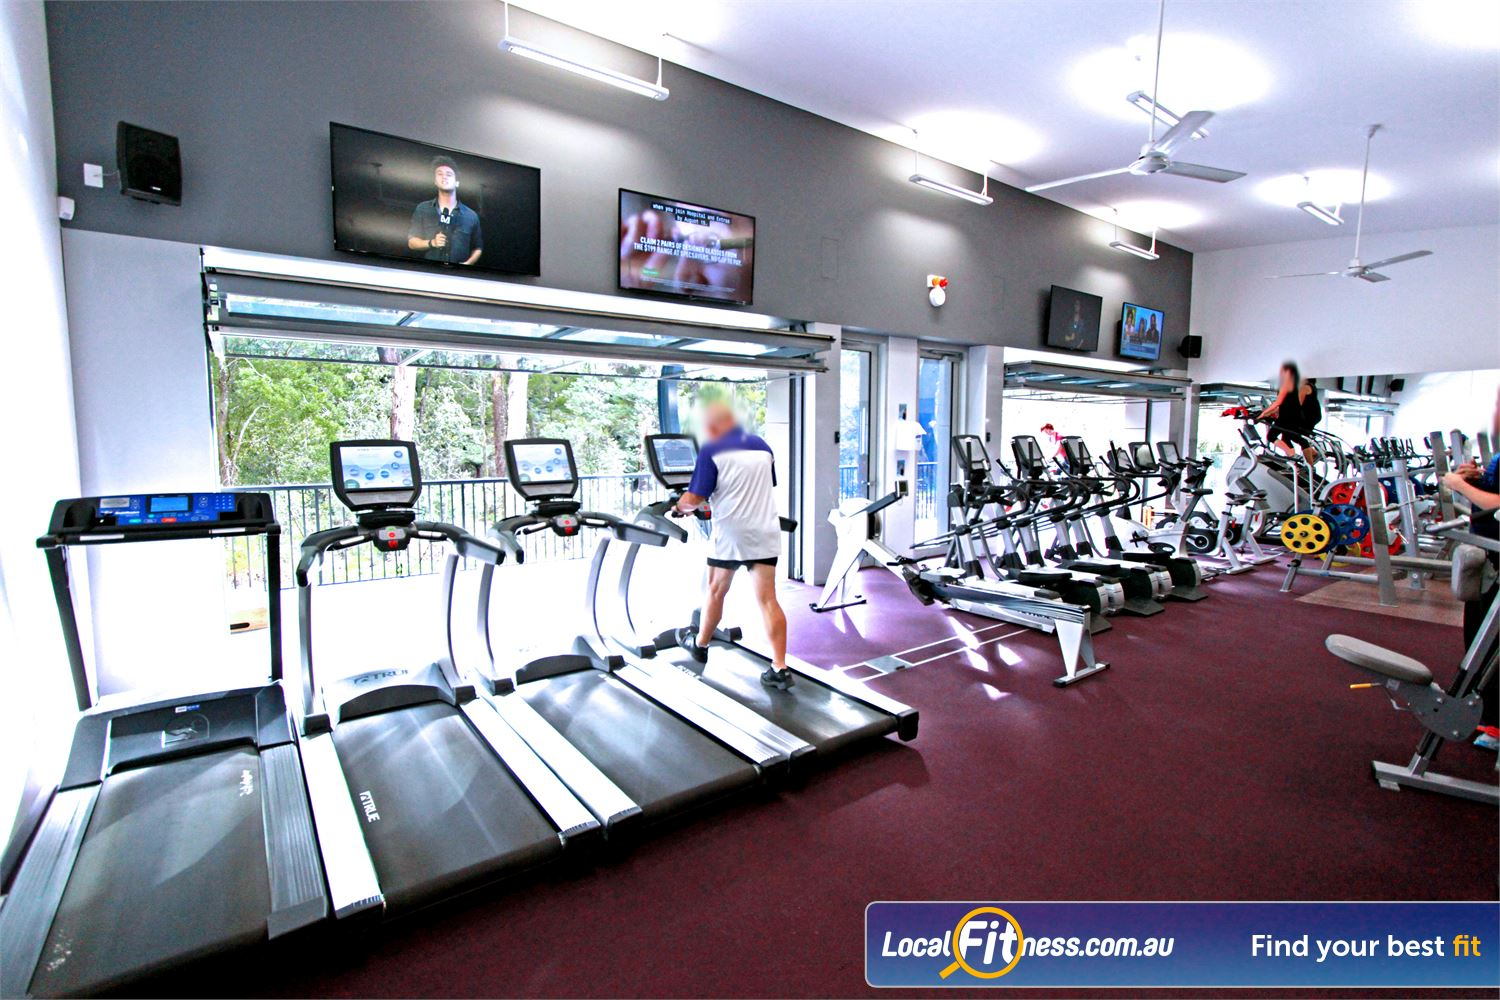 Monbulk Aquatic Centre Monbulk Our Monbulk gym provides open air cardio training.